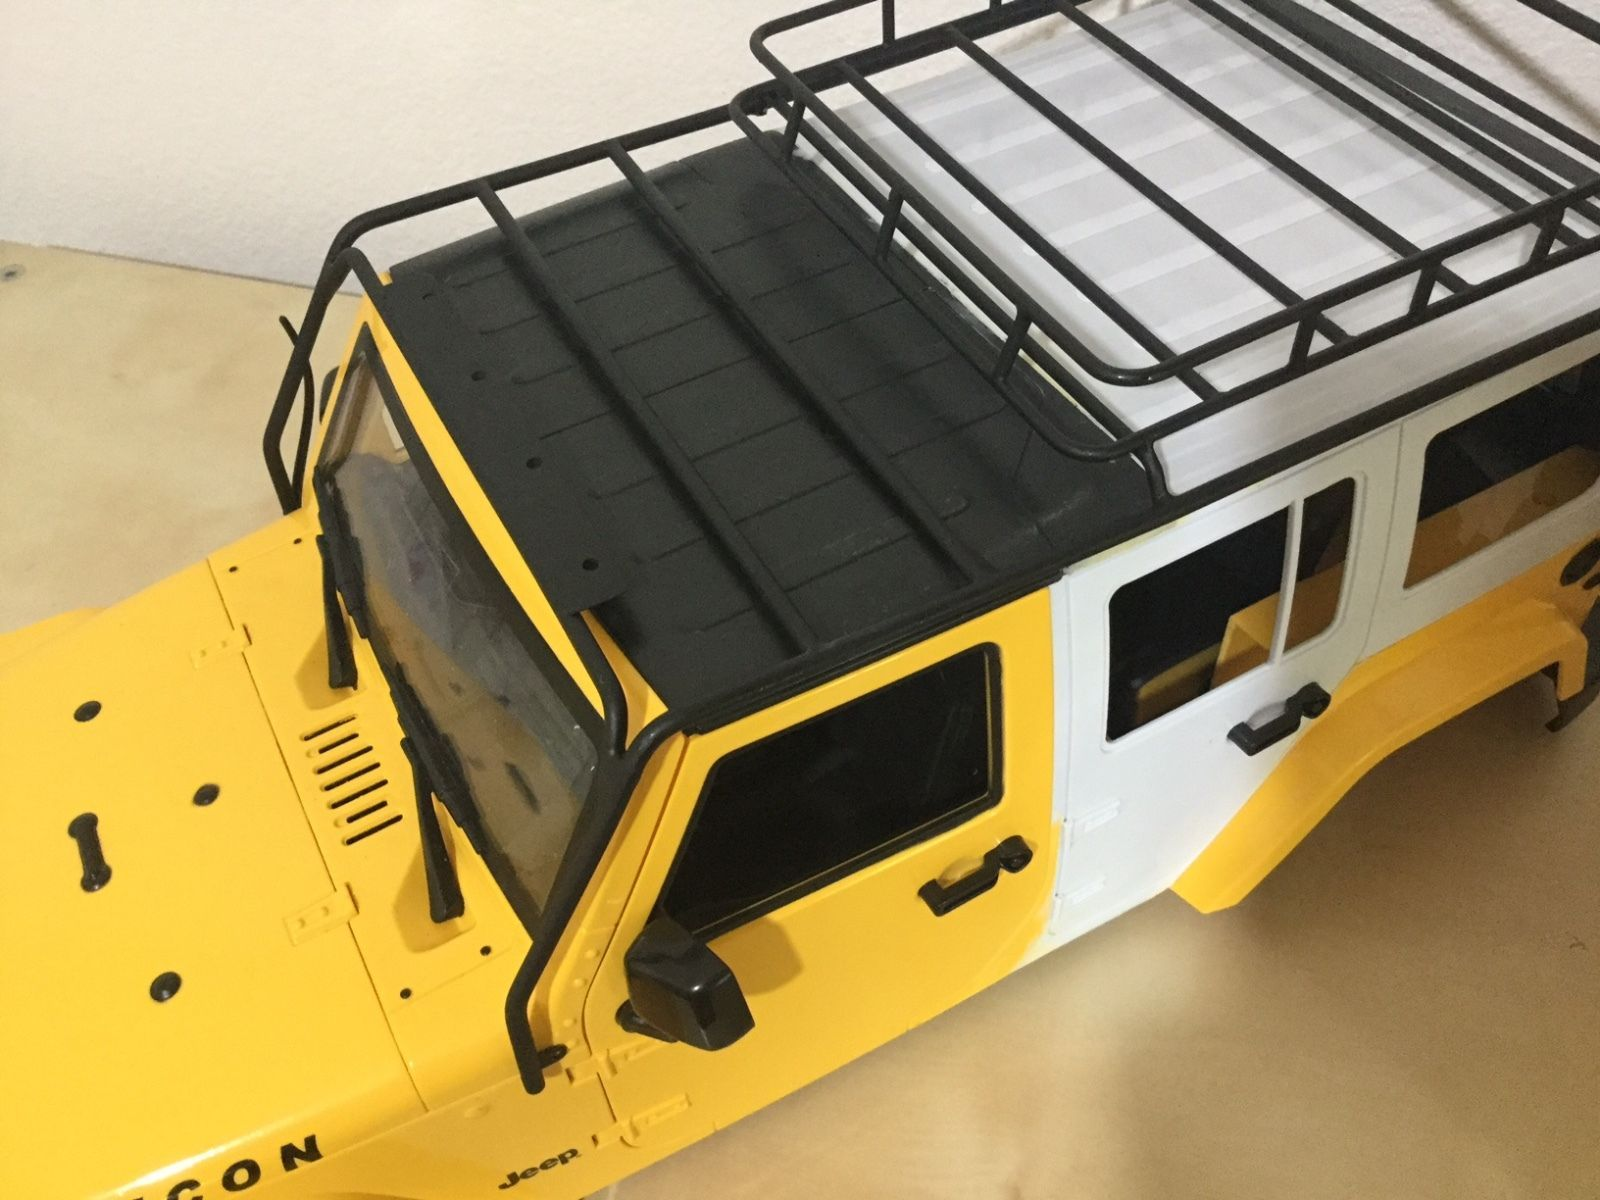 1 10 Scale Jeep Wrangler Rubicon 5 Doors 313 Mm Hand Made W Metal Roof Rack Ebay Roof Rack Jeep Wrangler Rubicon Metal Roof